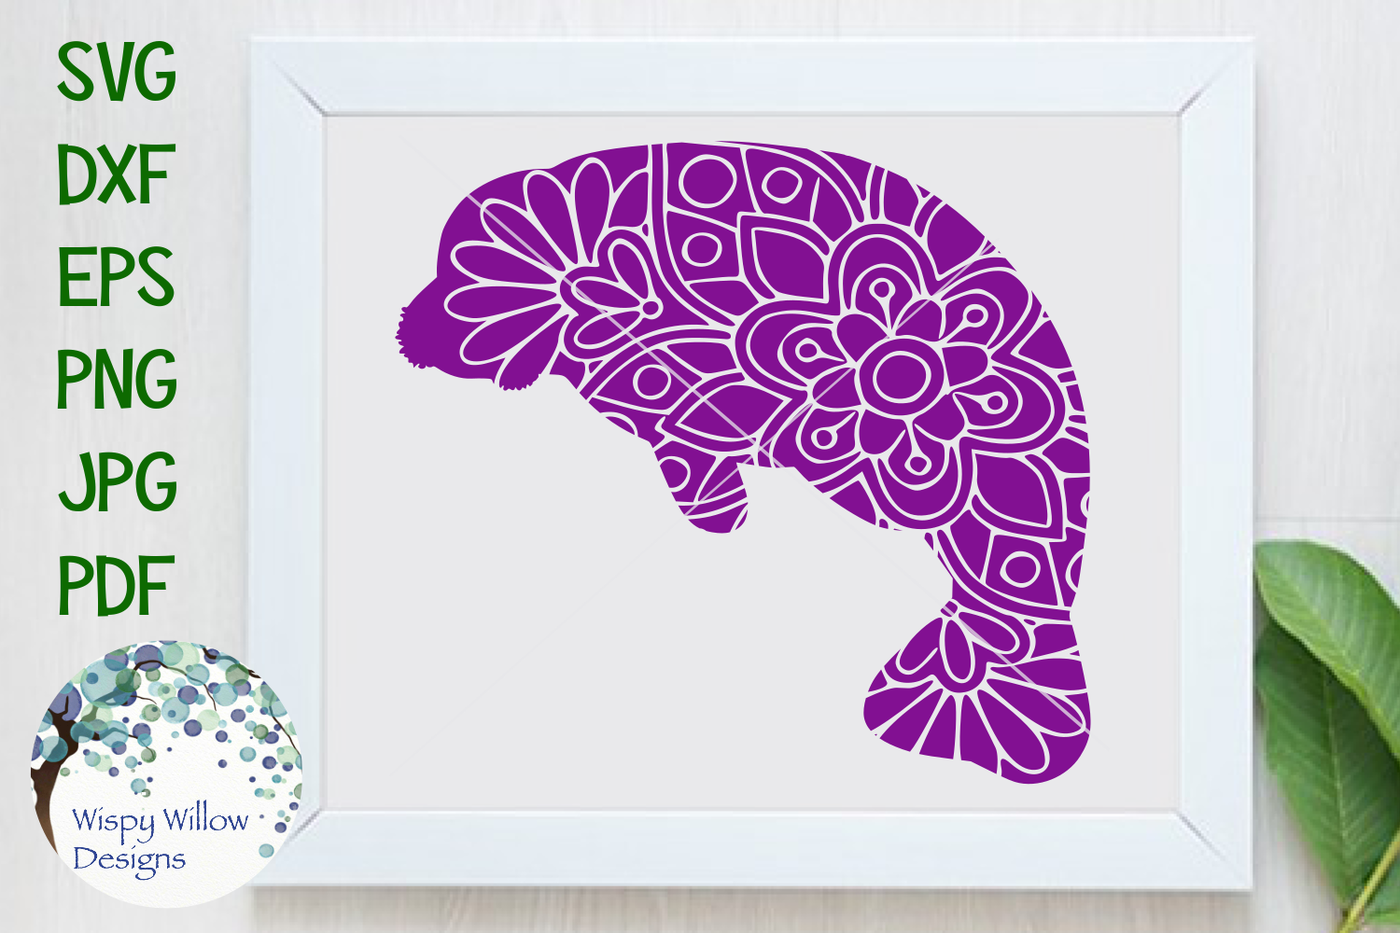 Manatee Mandala Svg Dxf Eps Png Jpg Pdf By Wispy Willow Designs